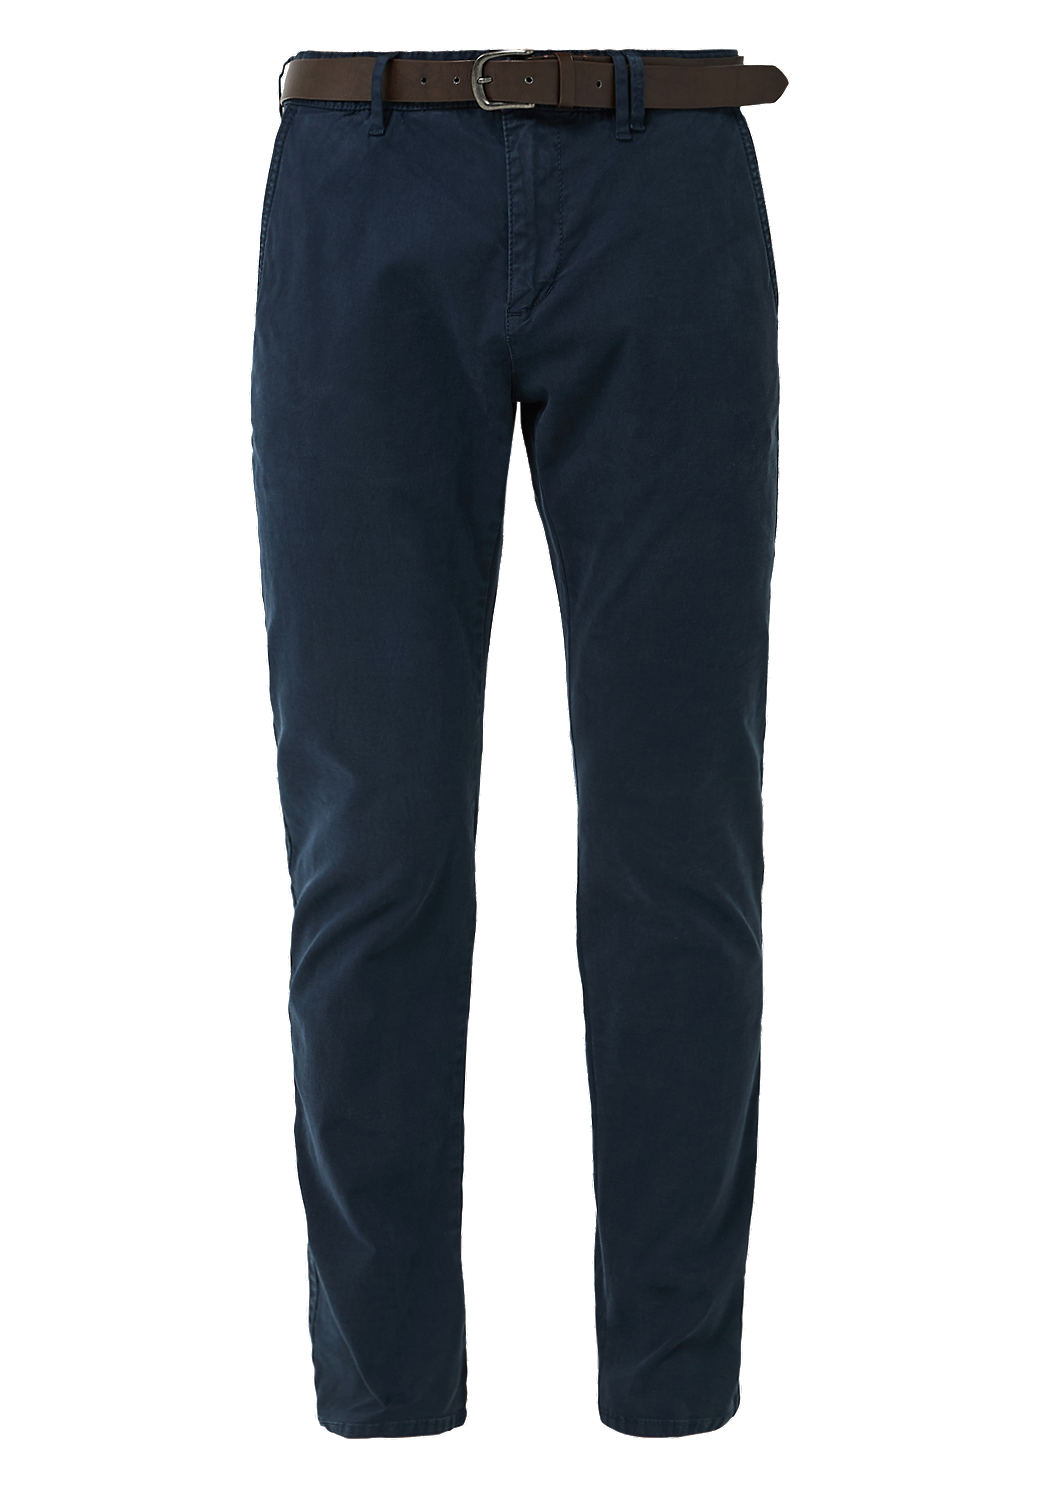 quality sold worldwide best sell Buy Sneck Slim: chinos with a belt   s.Oliver shop